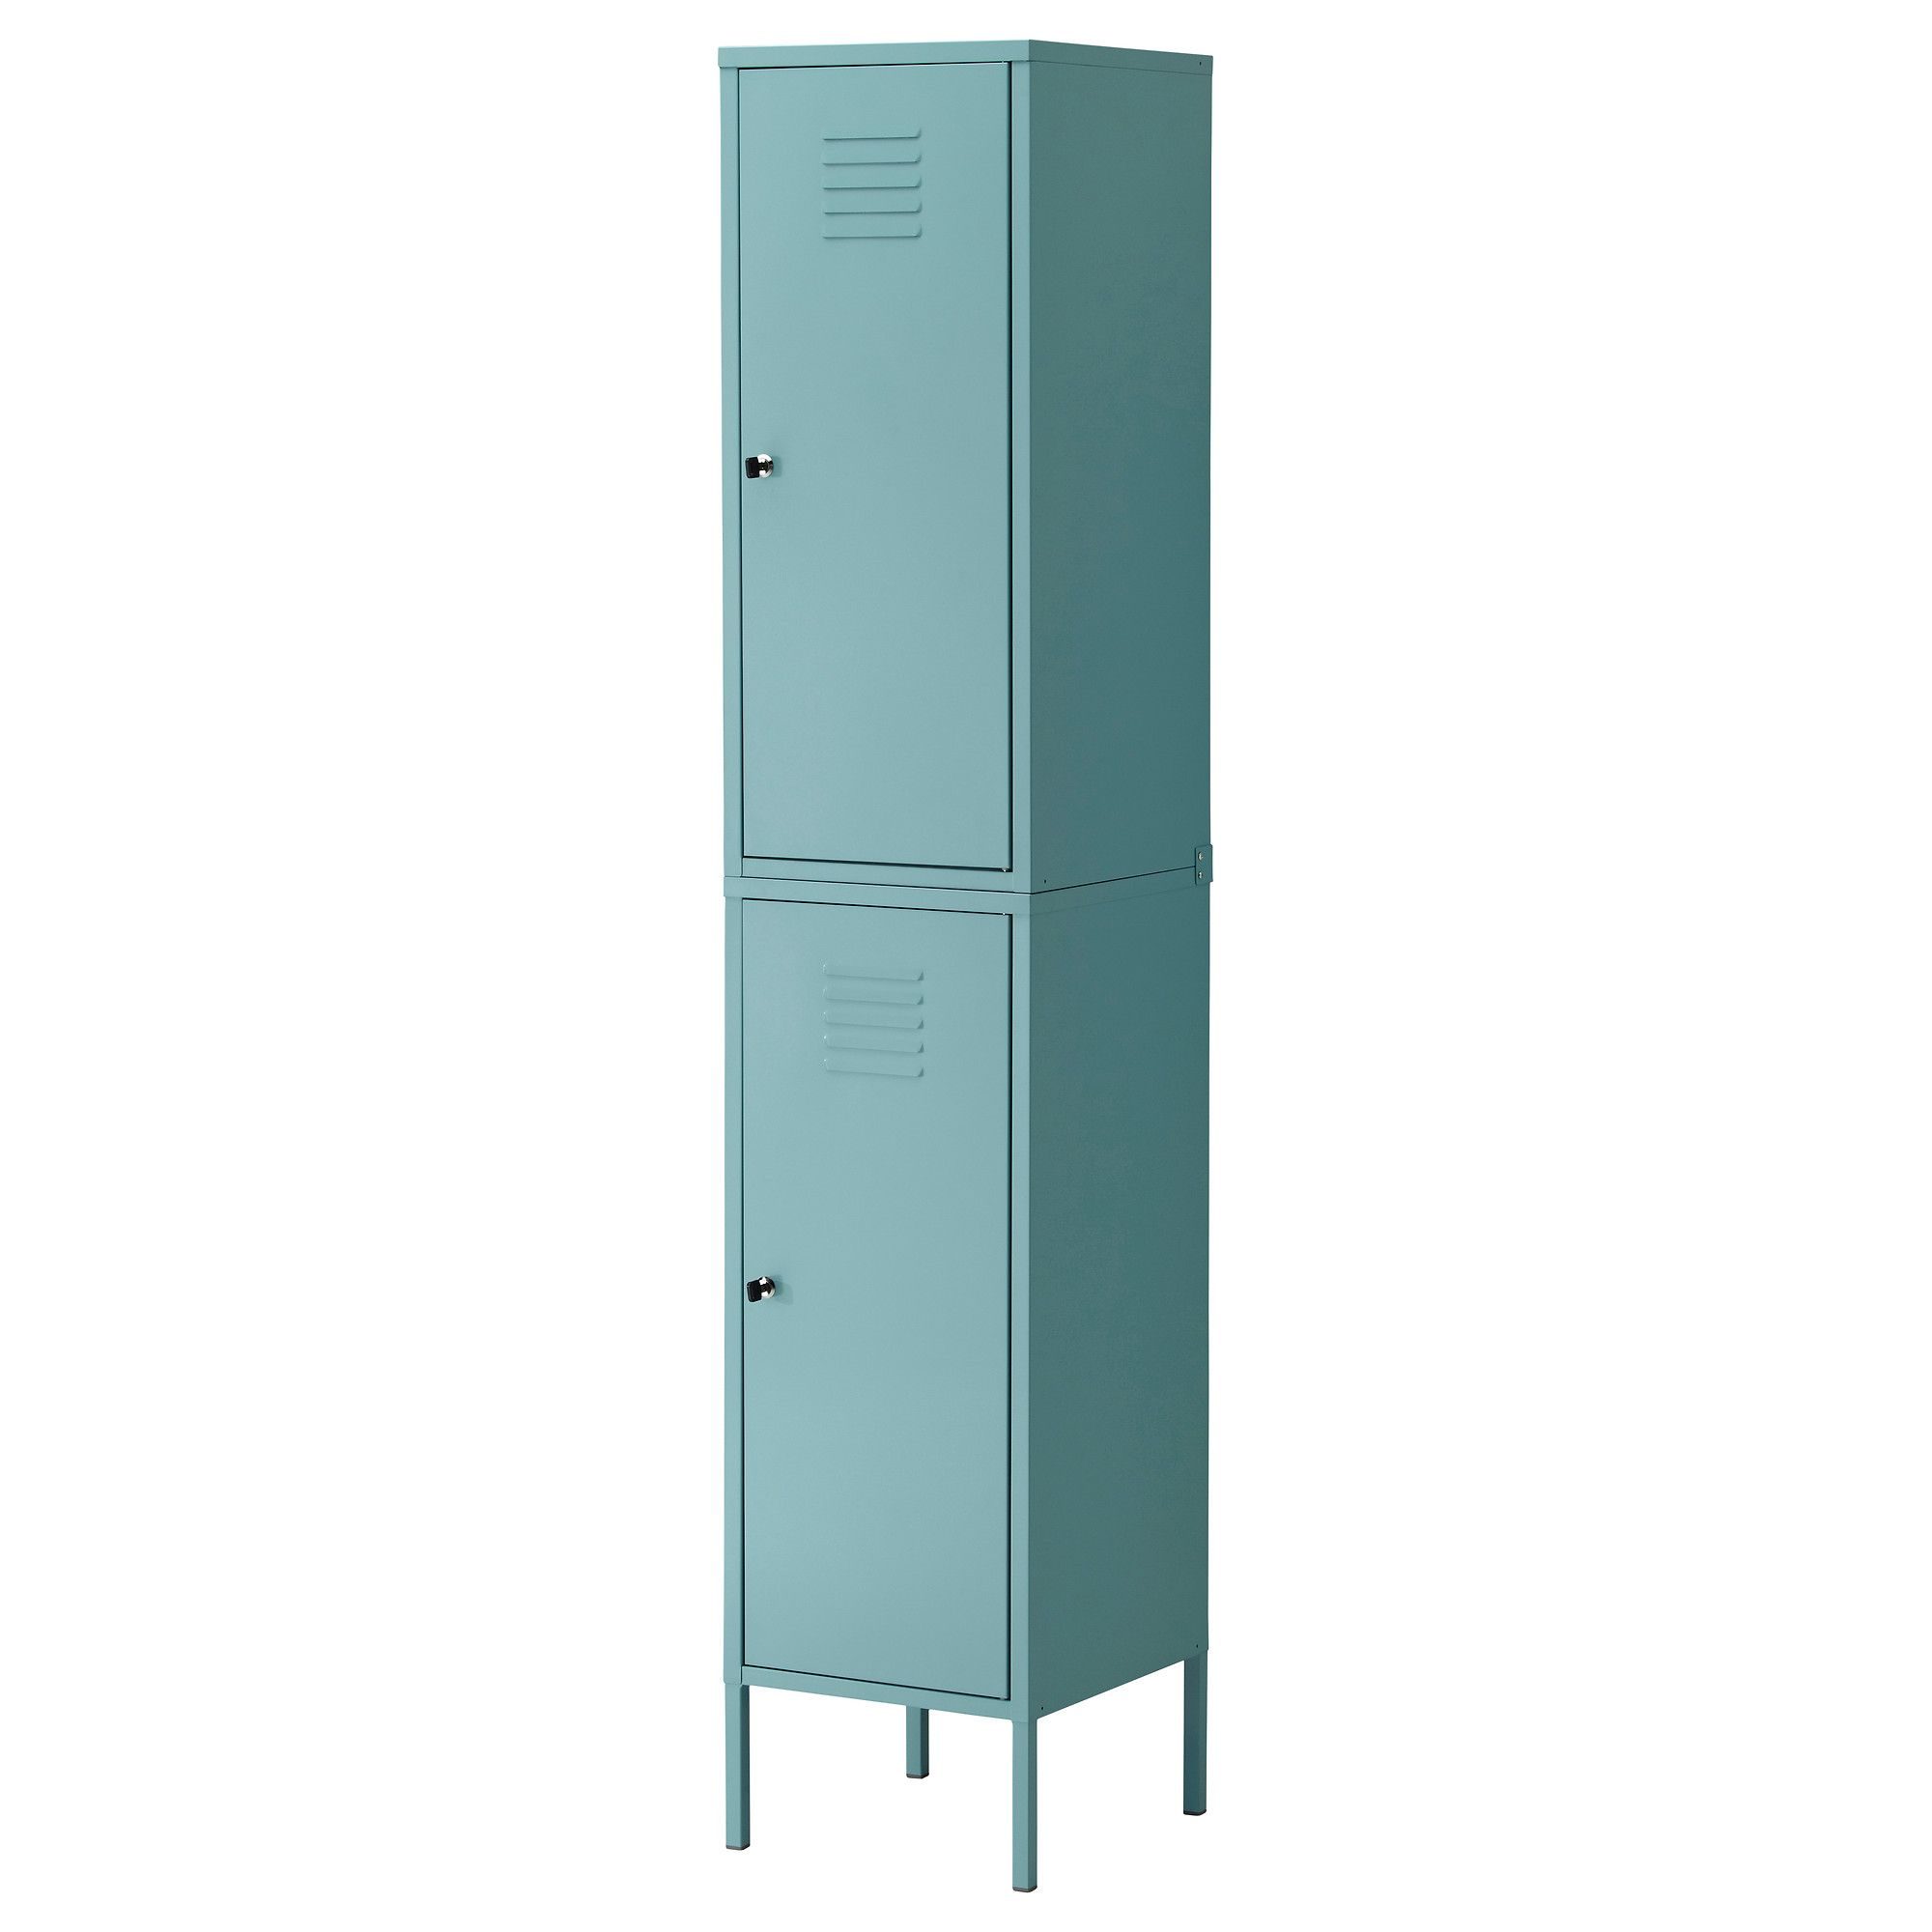 Ikea Ps Armoire Métallique Ikea Ps Cabinet Ikea 99 For Dining Room For Work Supplies And